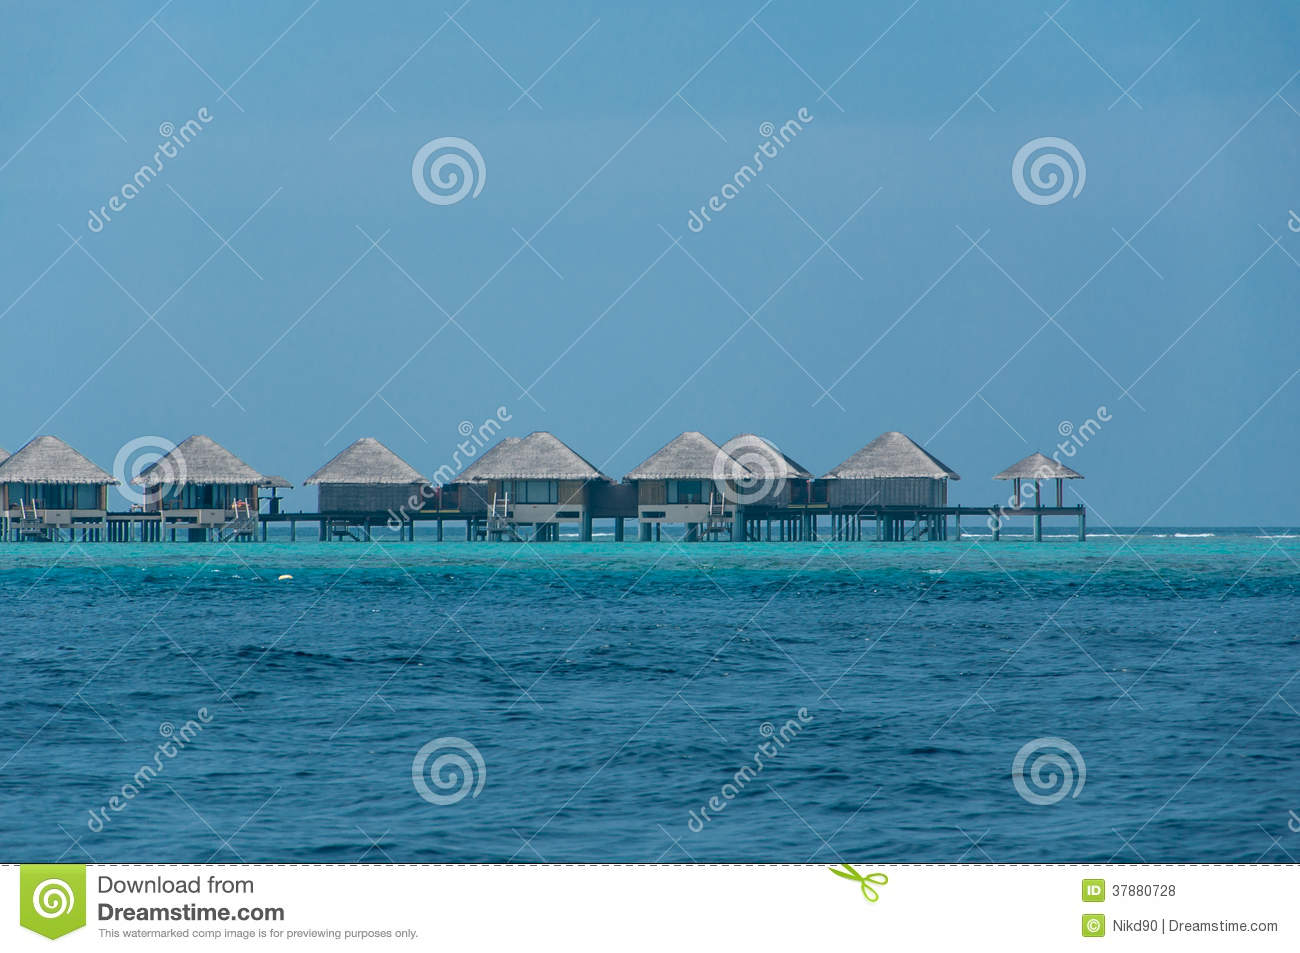 Royalty Free Stock Photos Beautiful Stunning Water Bungalow Sea Maldives Image37880728 on french cottage house plans